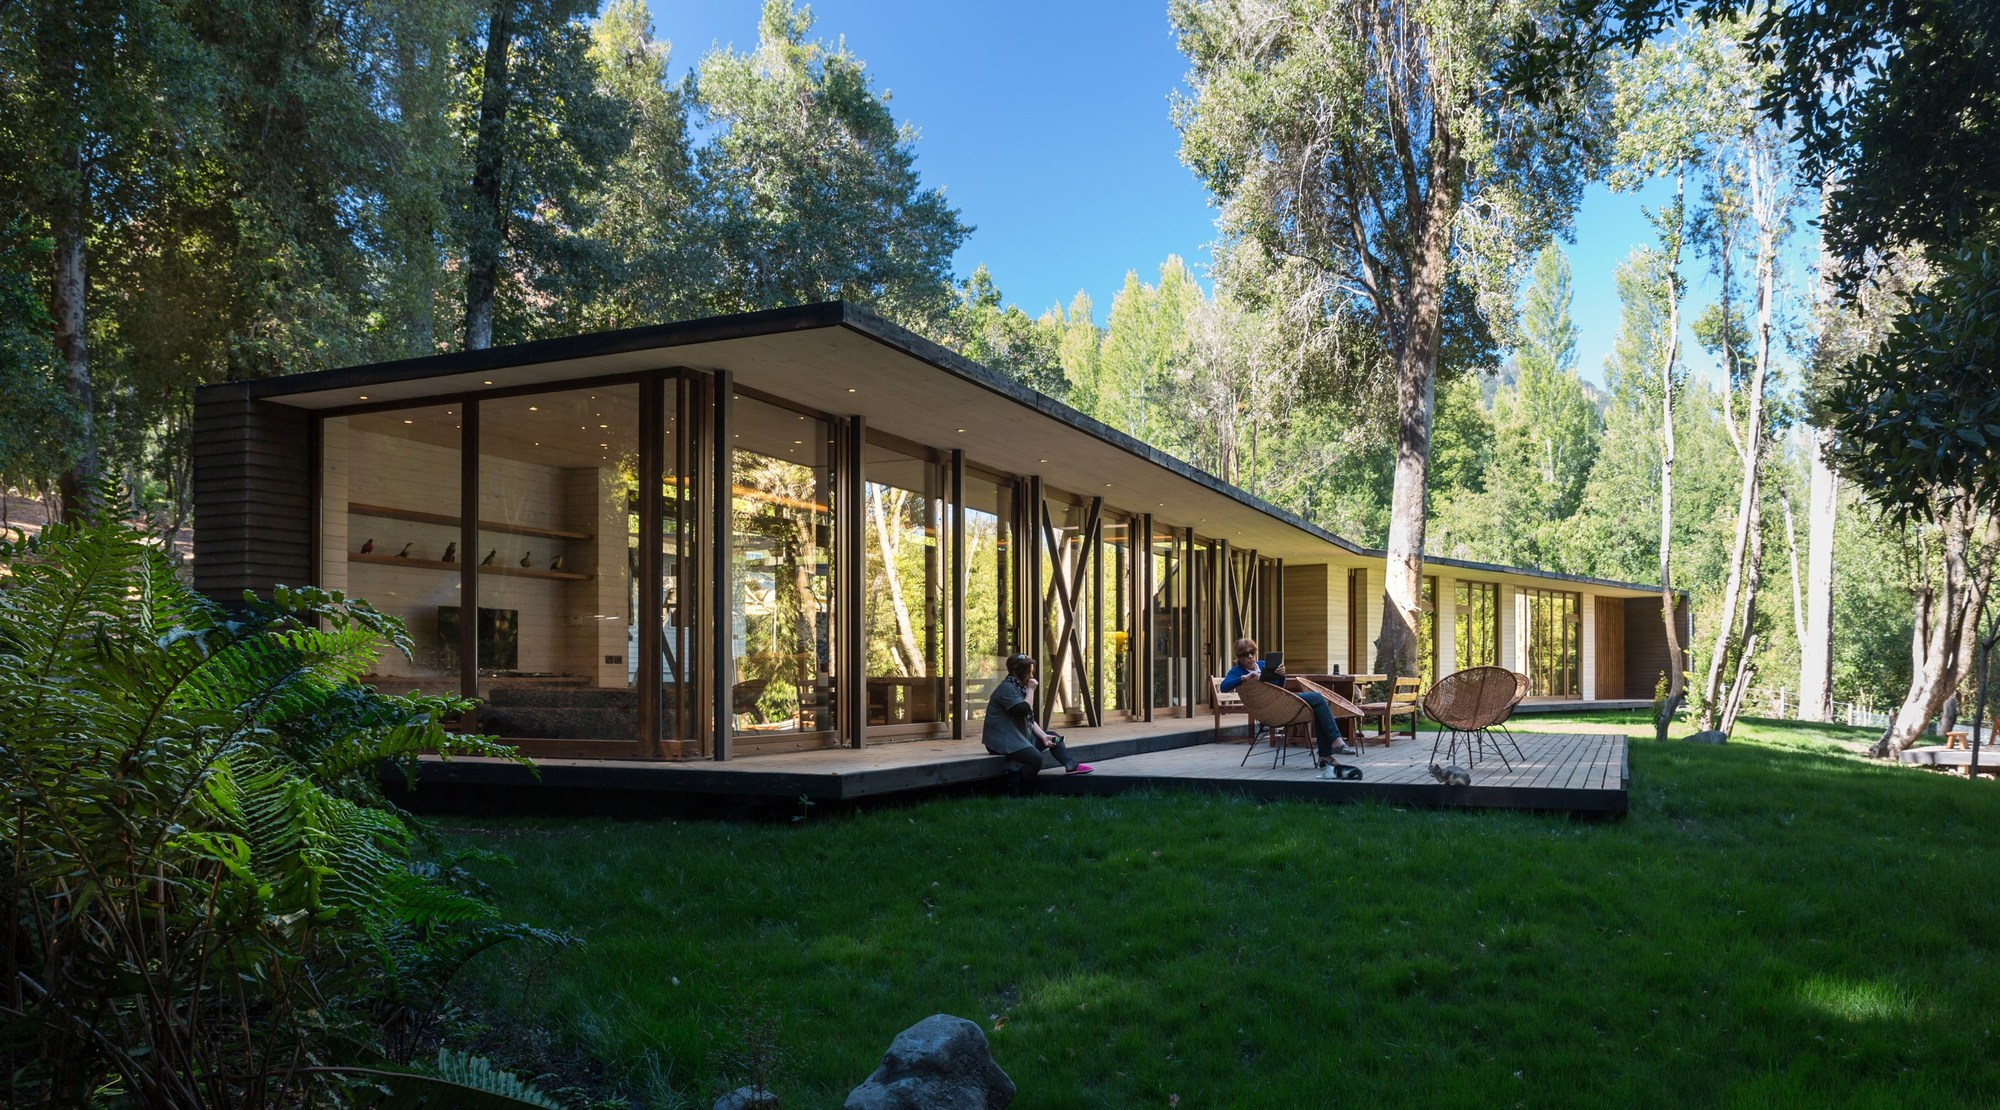 House in lake villarrica planmaestro archdaily - Casas contemporaneas ...